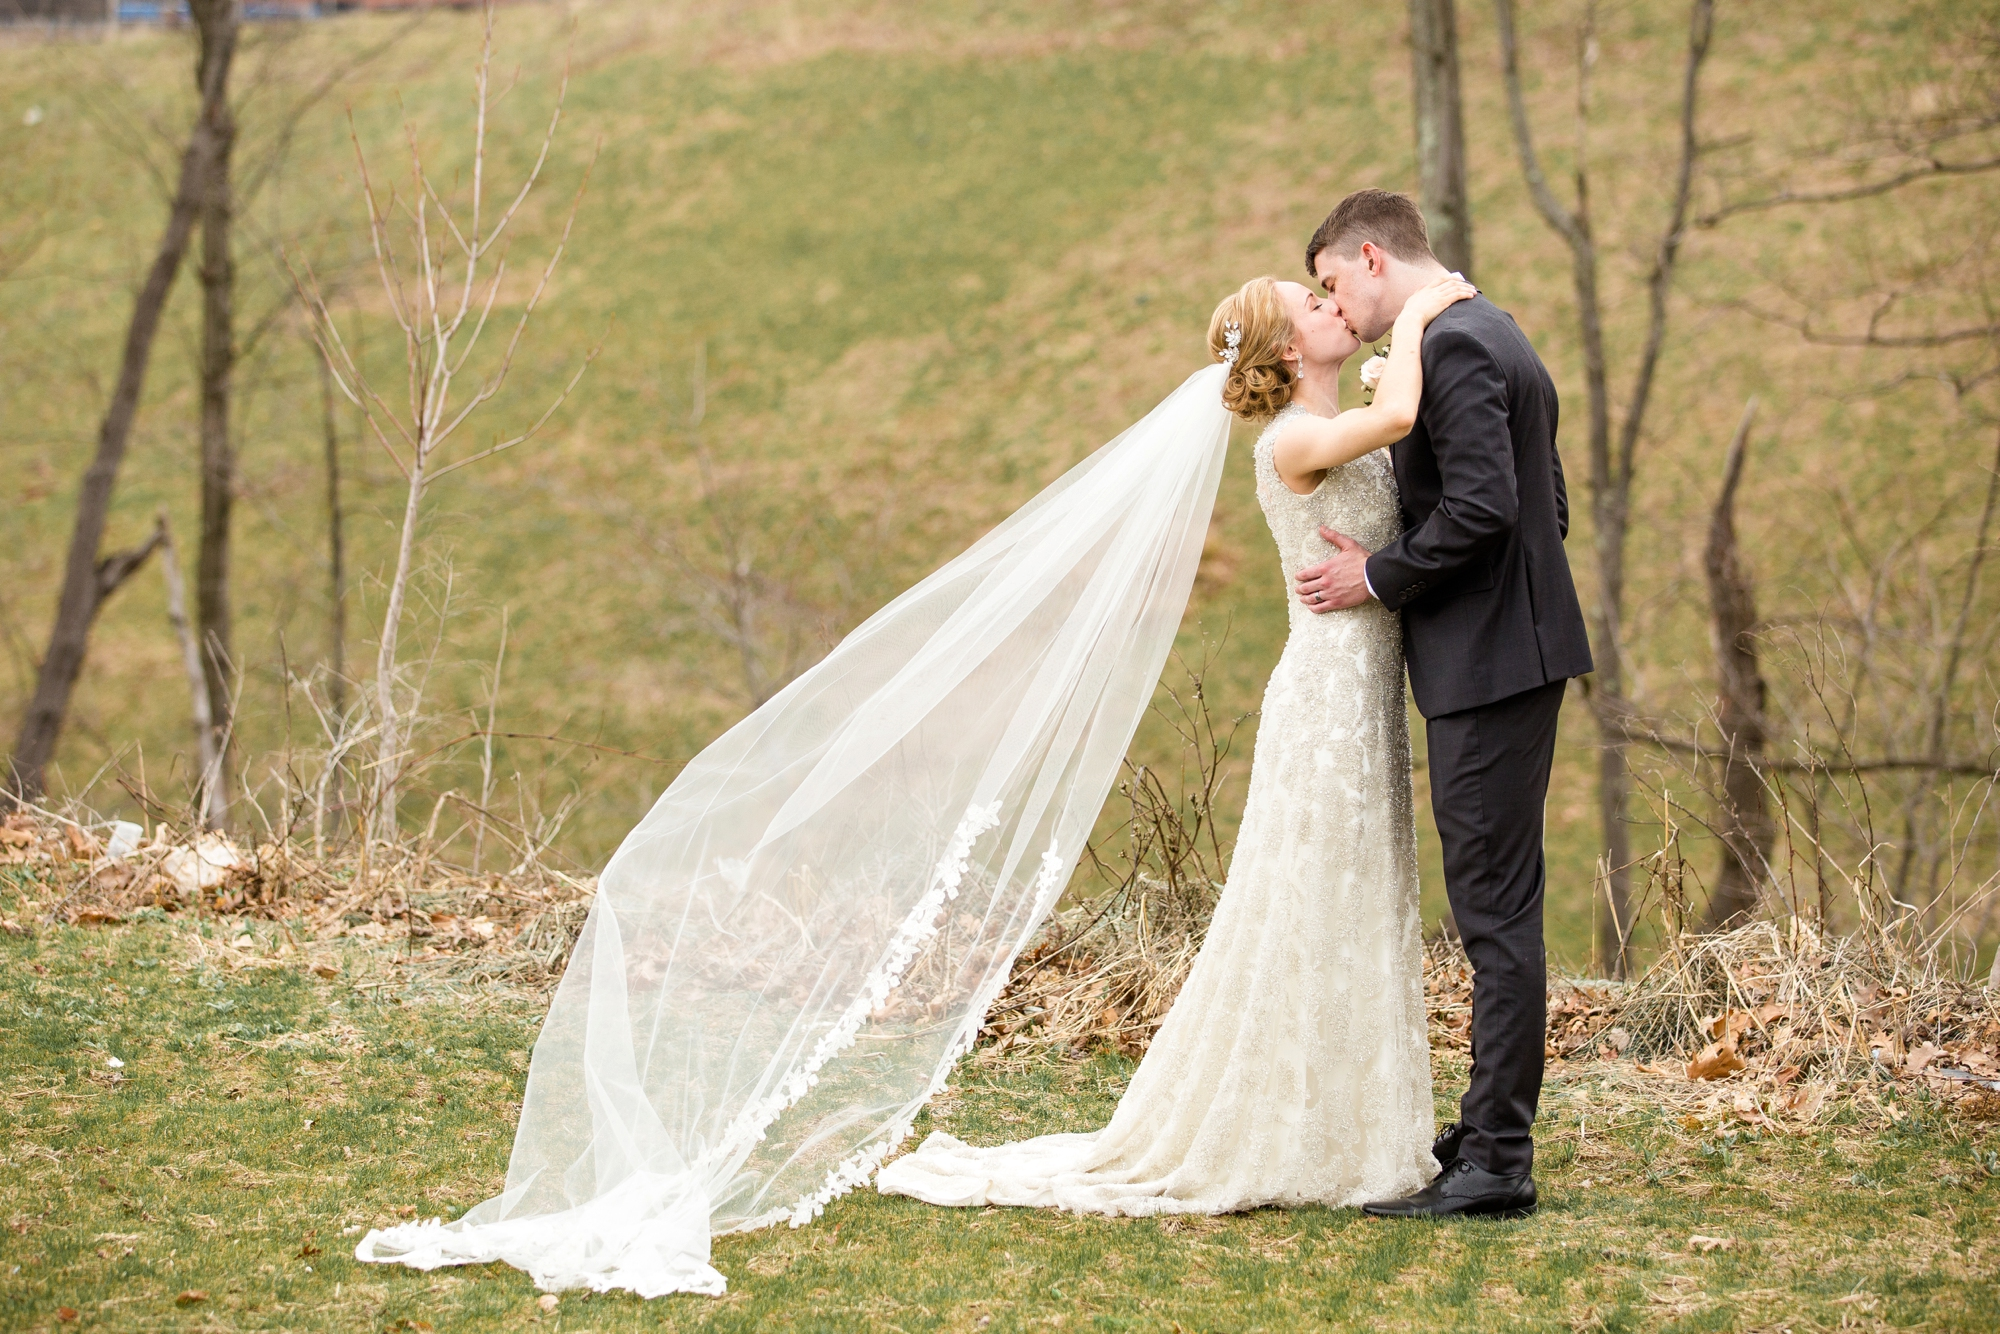 pittsburgh wedding photographer, pittsburgh wedding venues, pittsburgh wedding photos, noahs event center cranberry township wedding photos